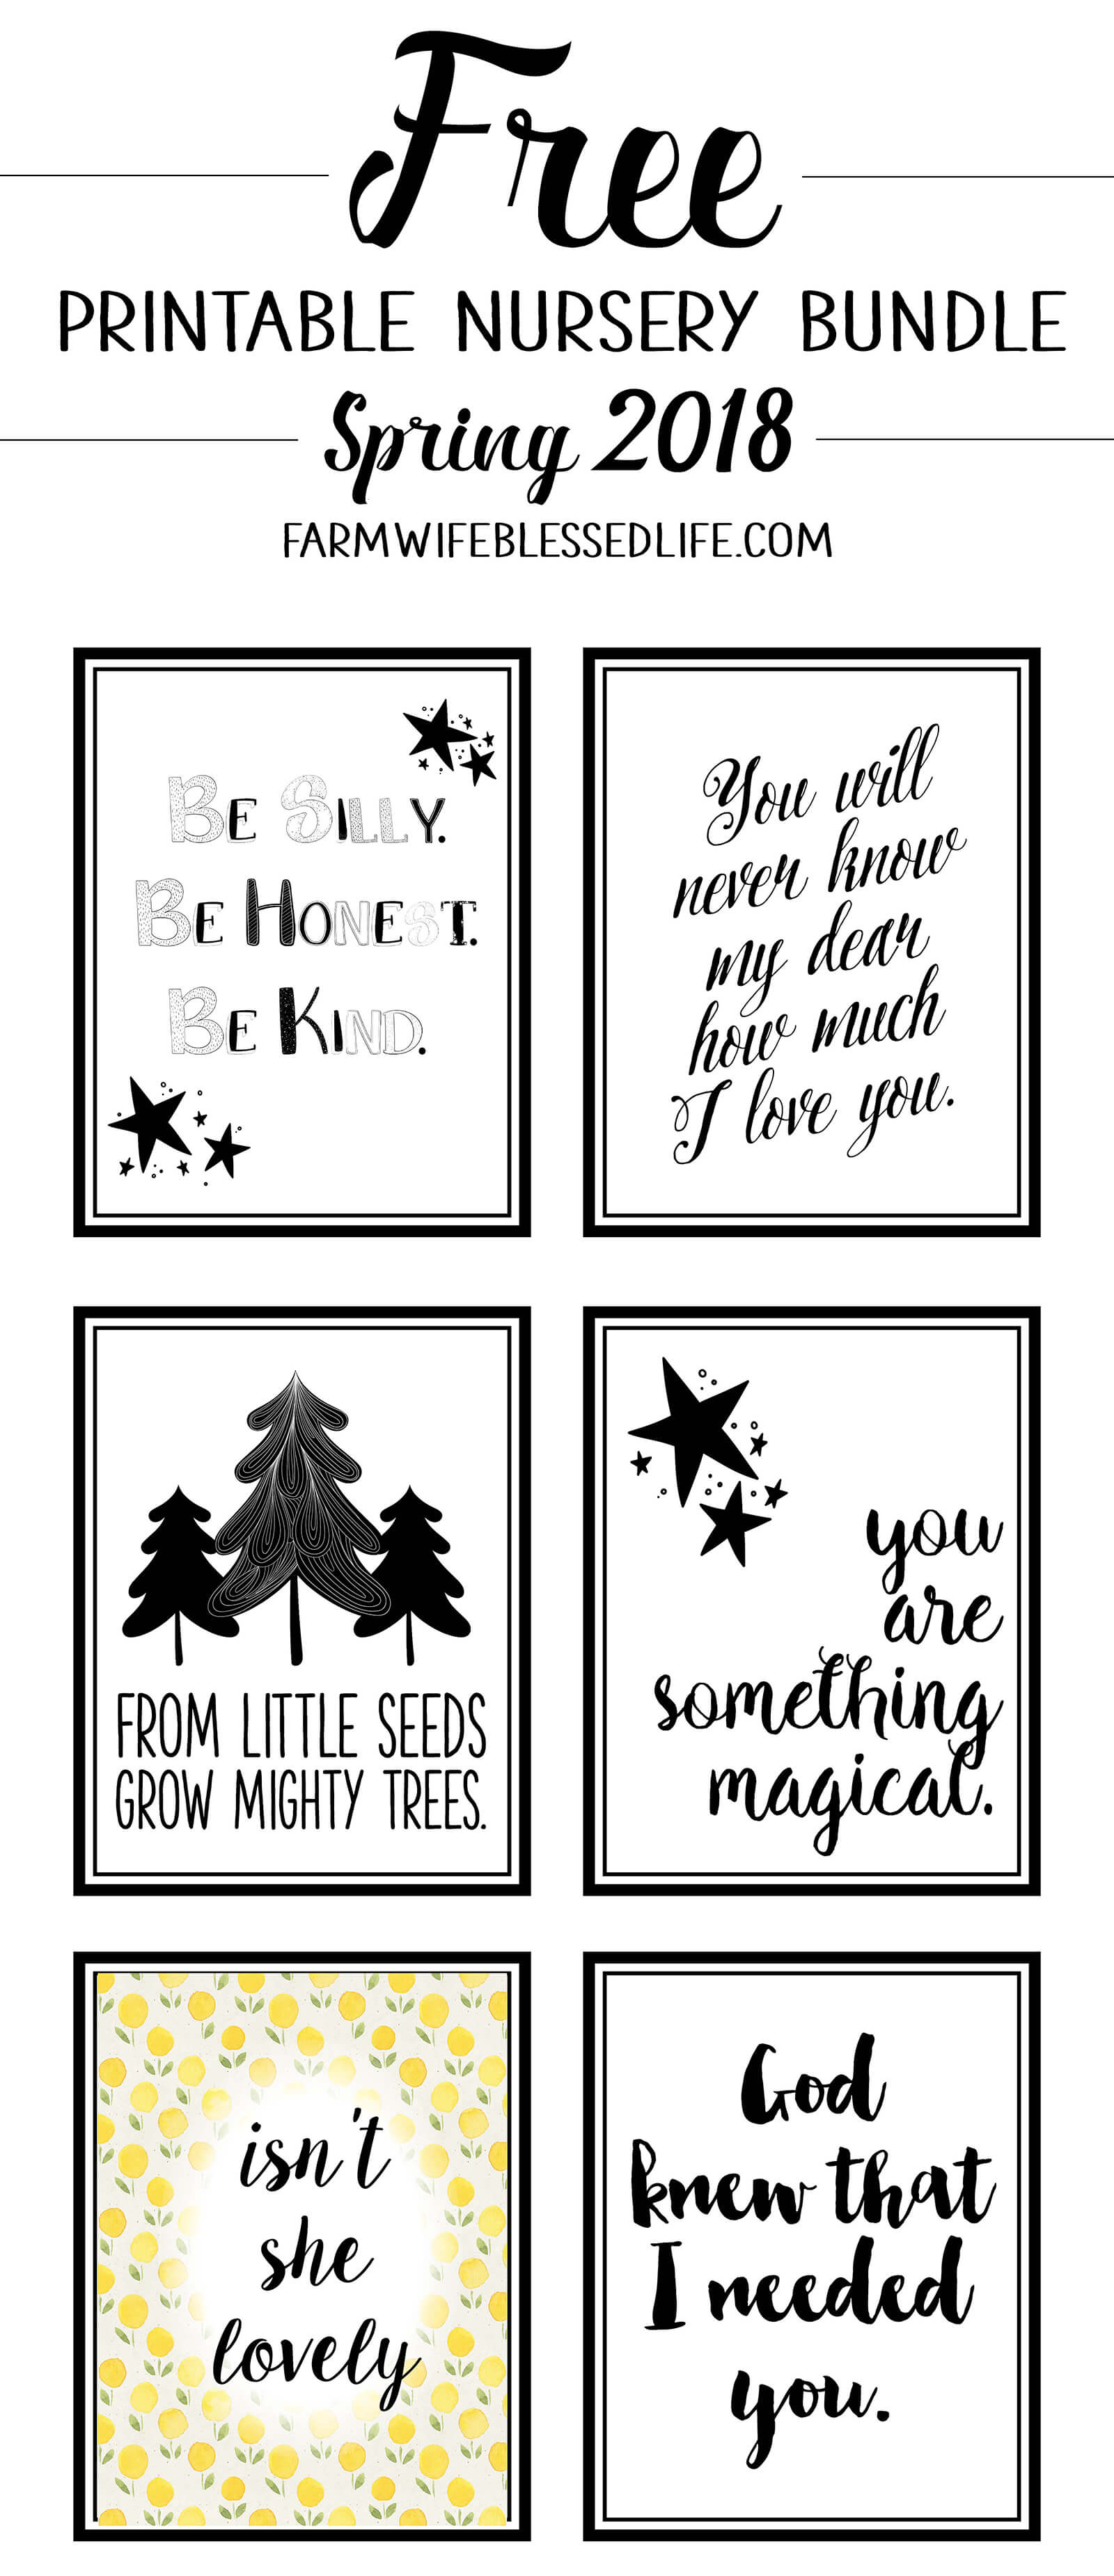 Free printable nursery art for Spring 2018